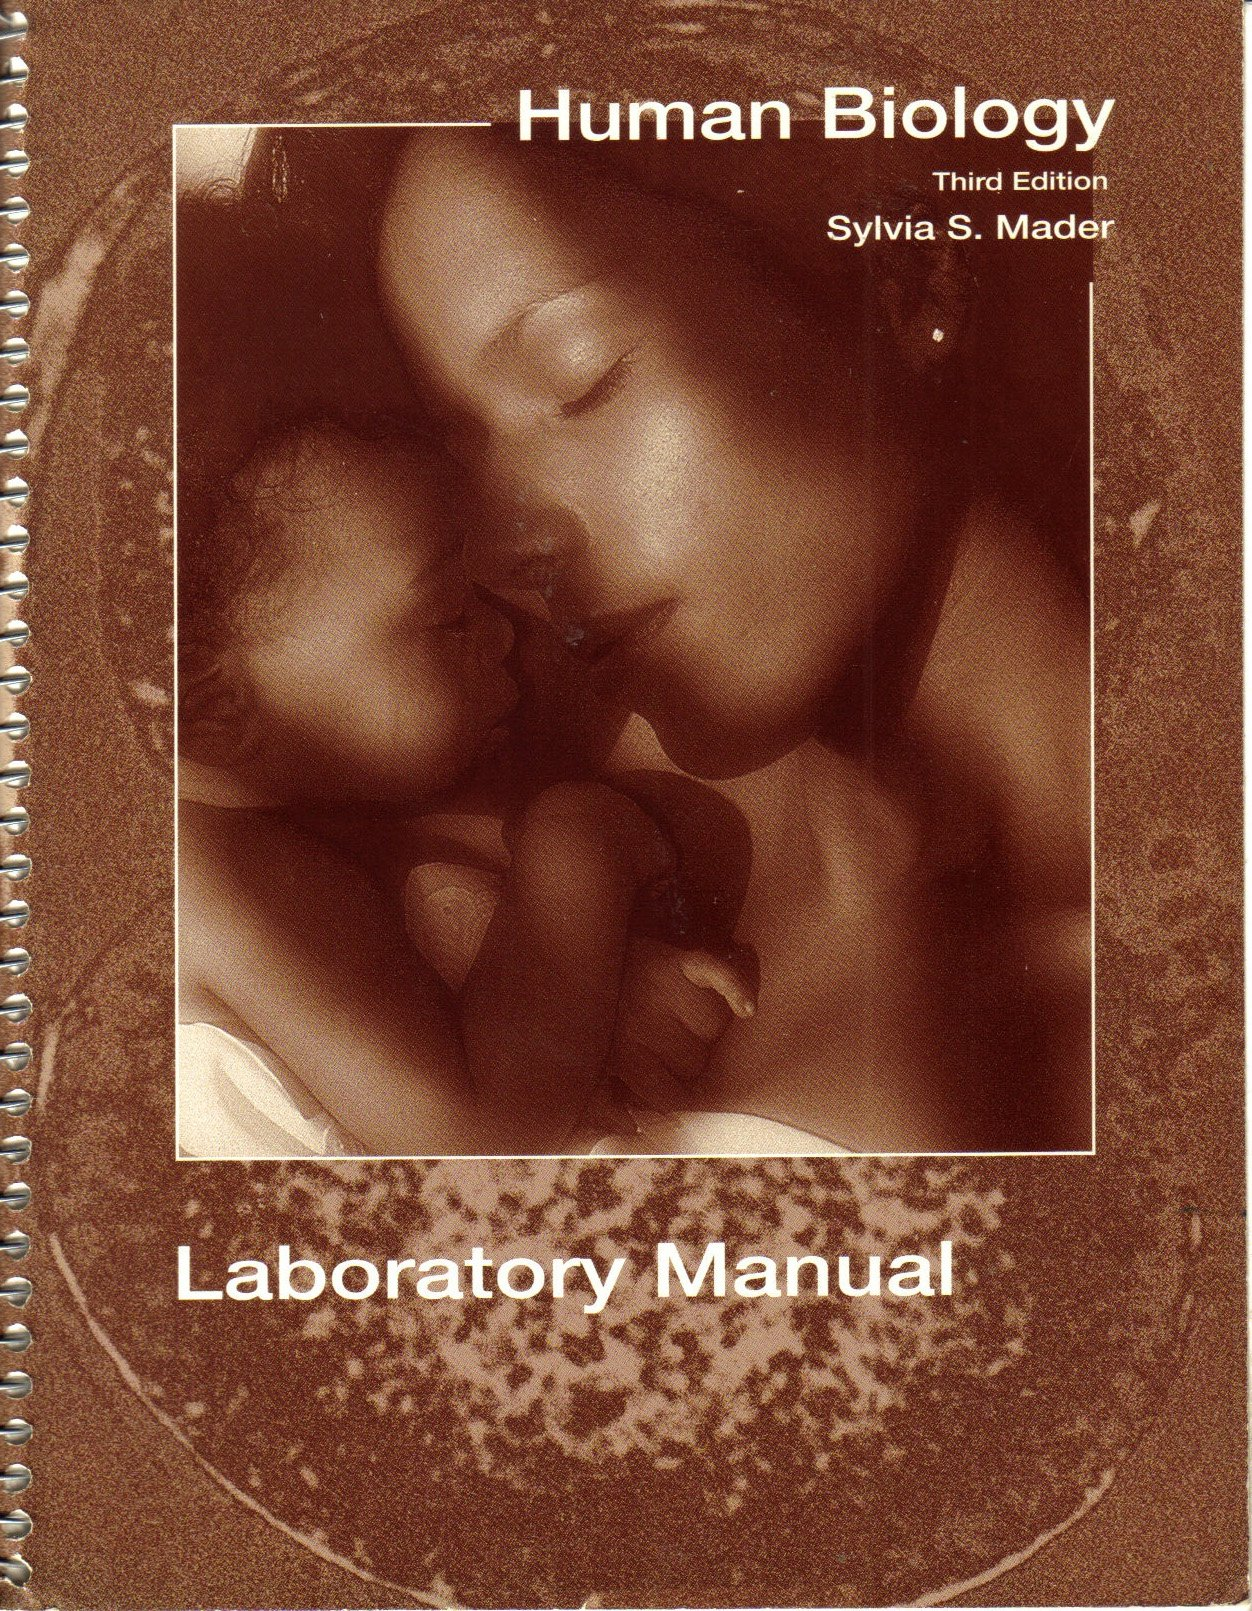 Human Biology: Laboratory Manual: Amazon.co.uk: Sylvia S. Mader:  9780697123367: Books